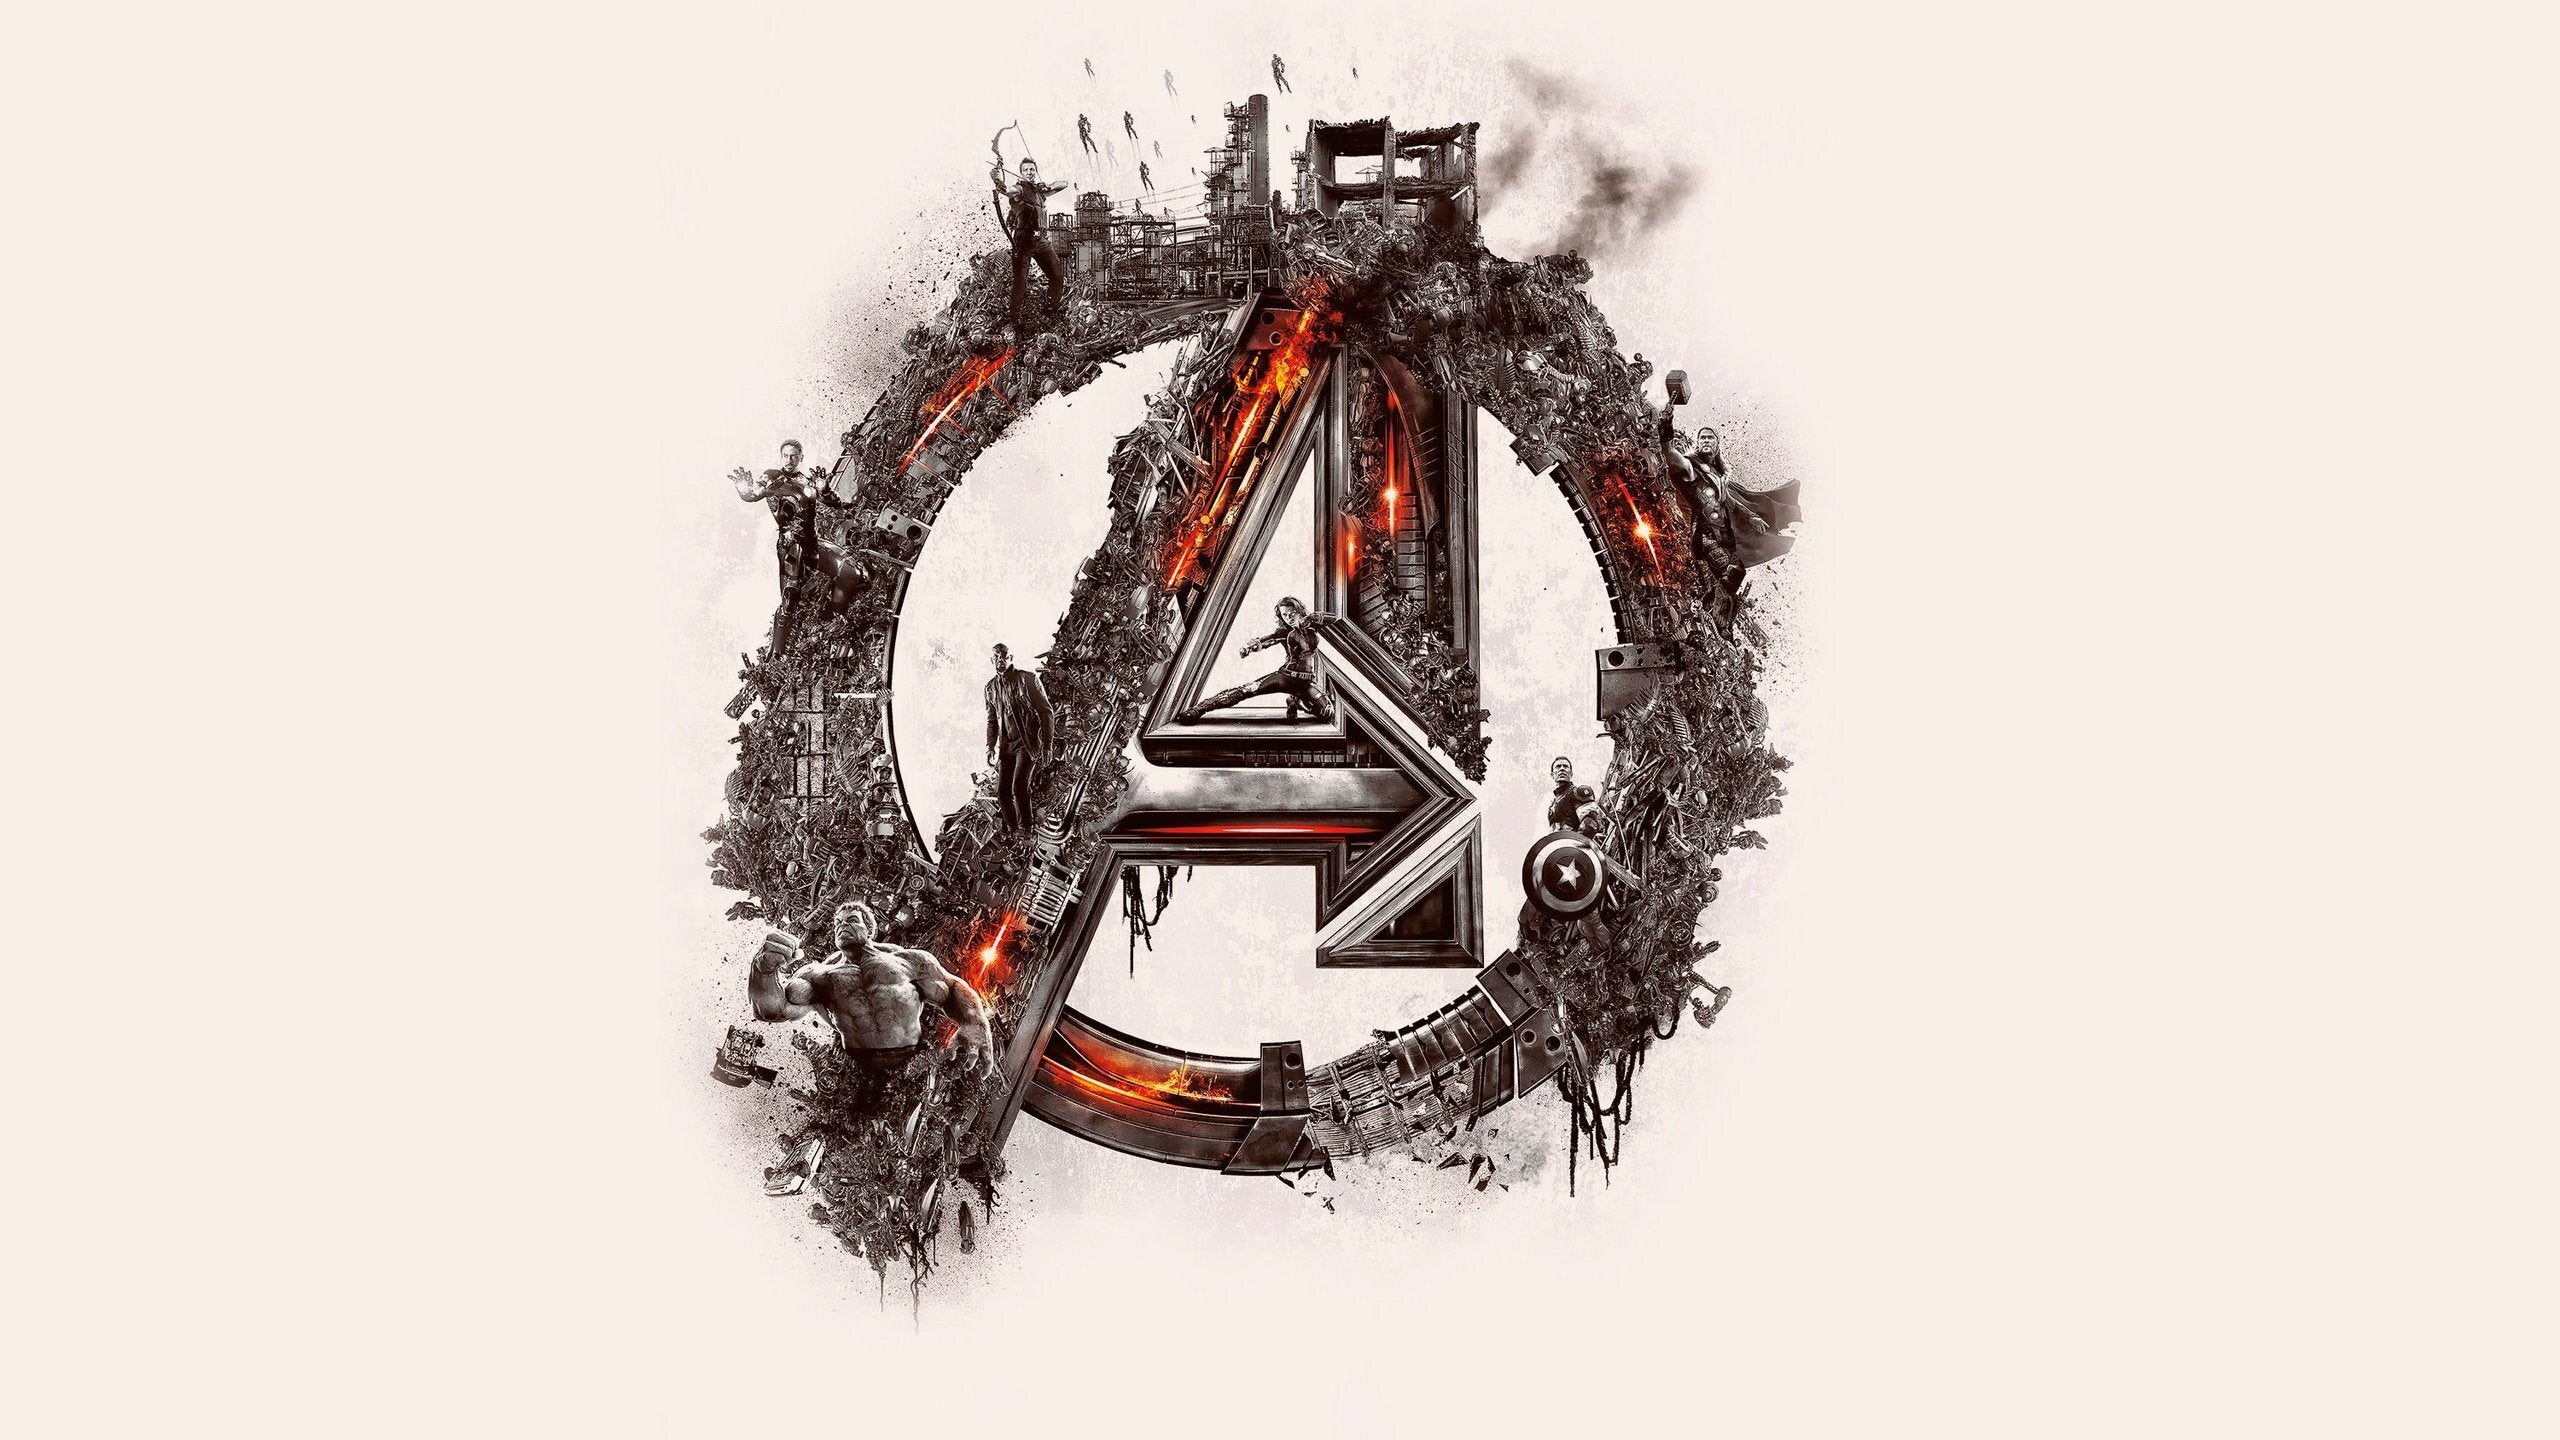 Avengers Logo Wallpaper 4k 2560x1440 Download Hd Wallpaper Wallpapertip